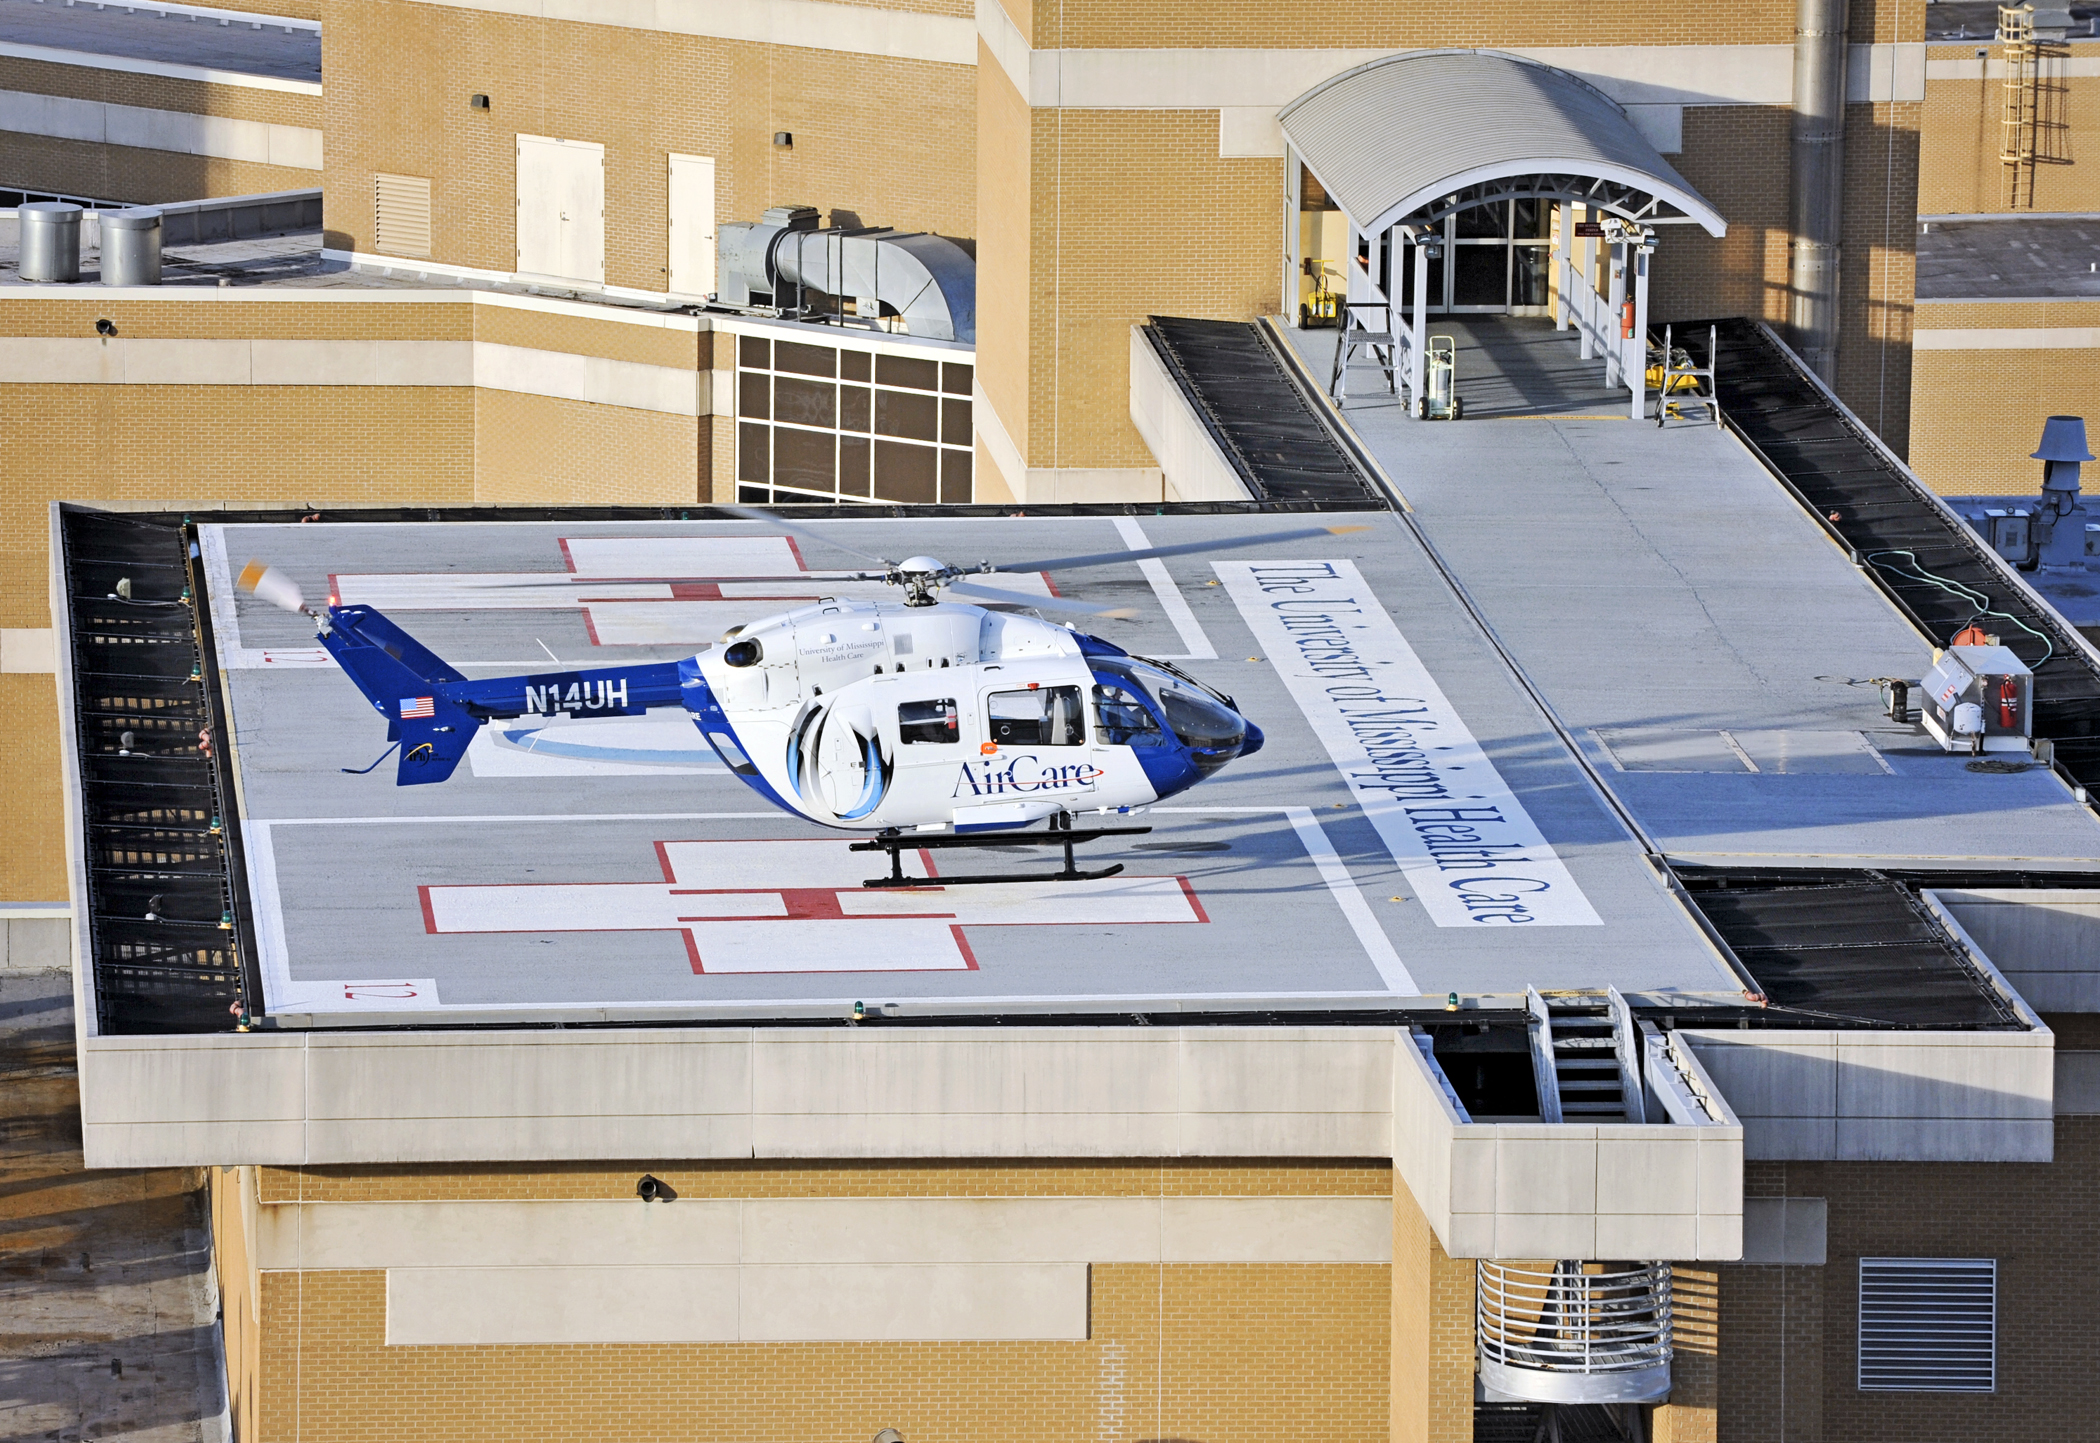 AirCare transport helicopter